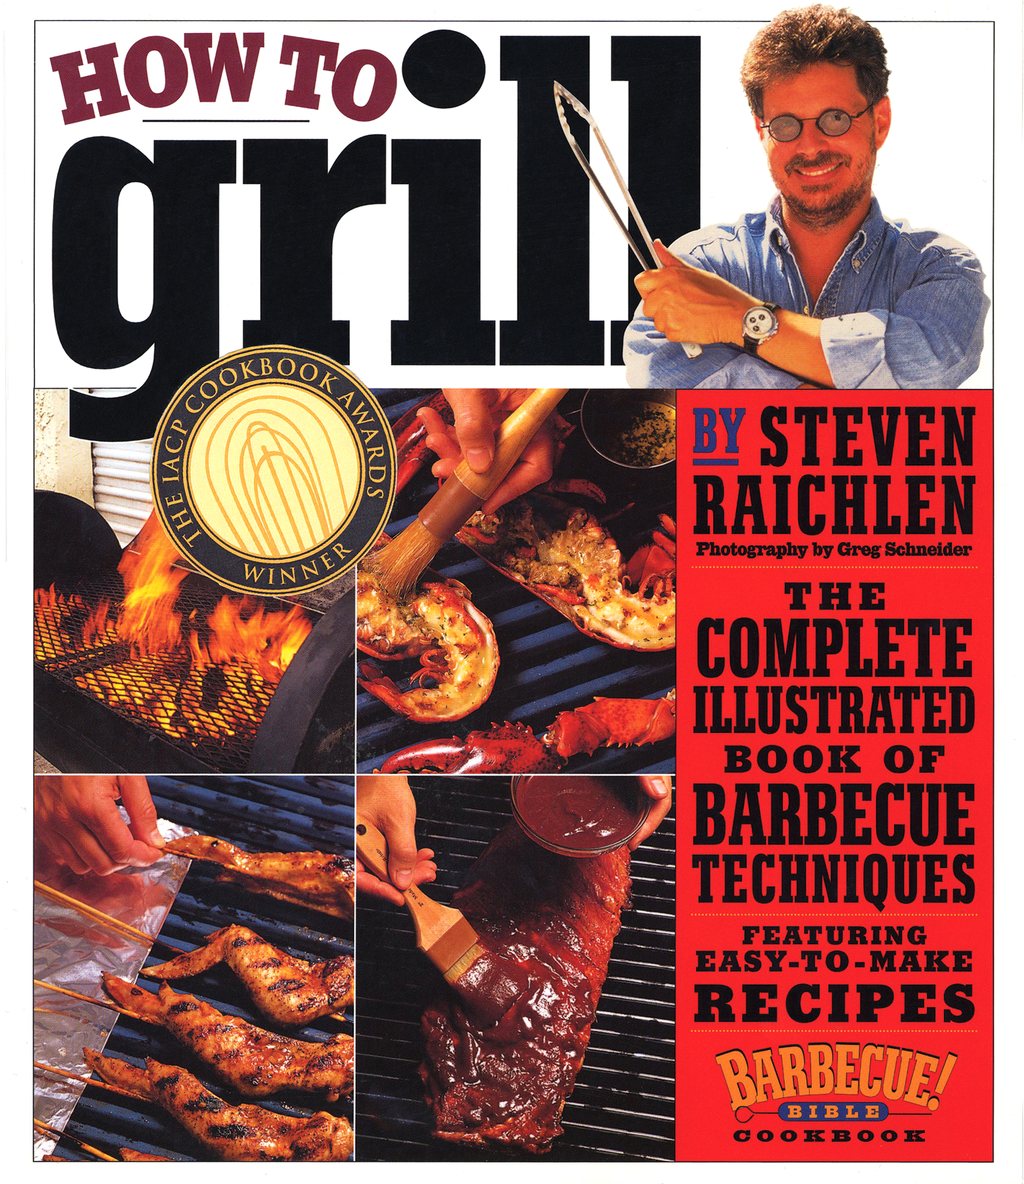 How To Grill: The Complete Illustrated Book Of Barbecue Techniques  A Barbecue Bible! Cookbook